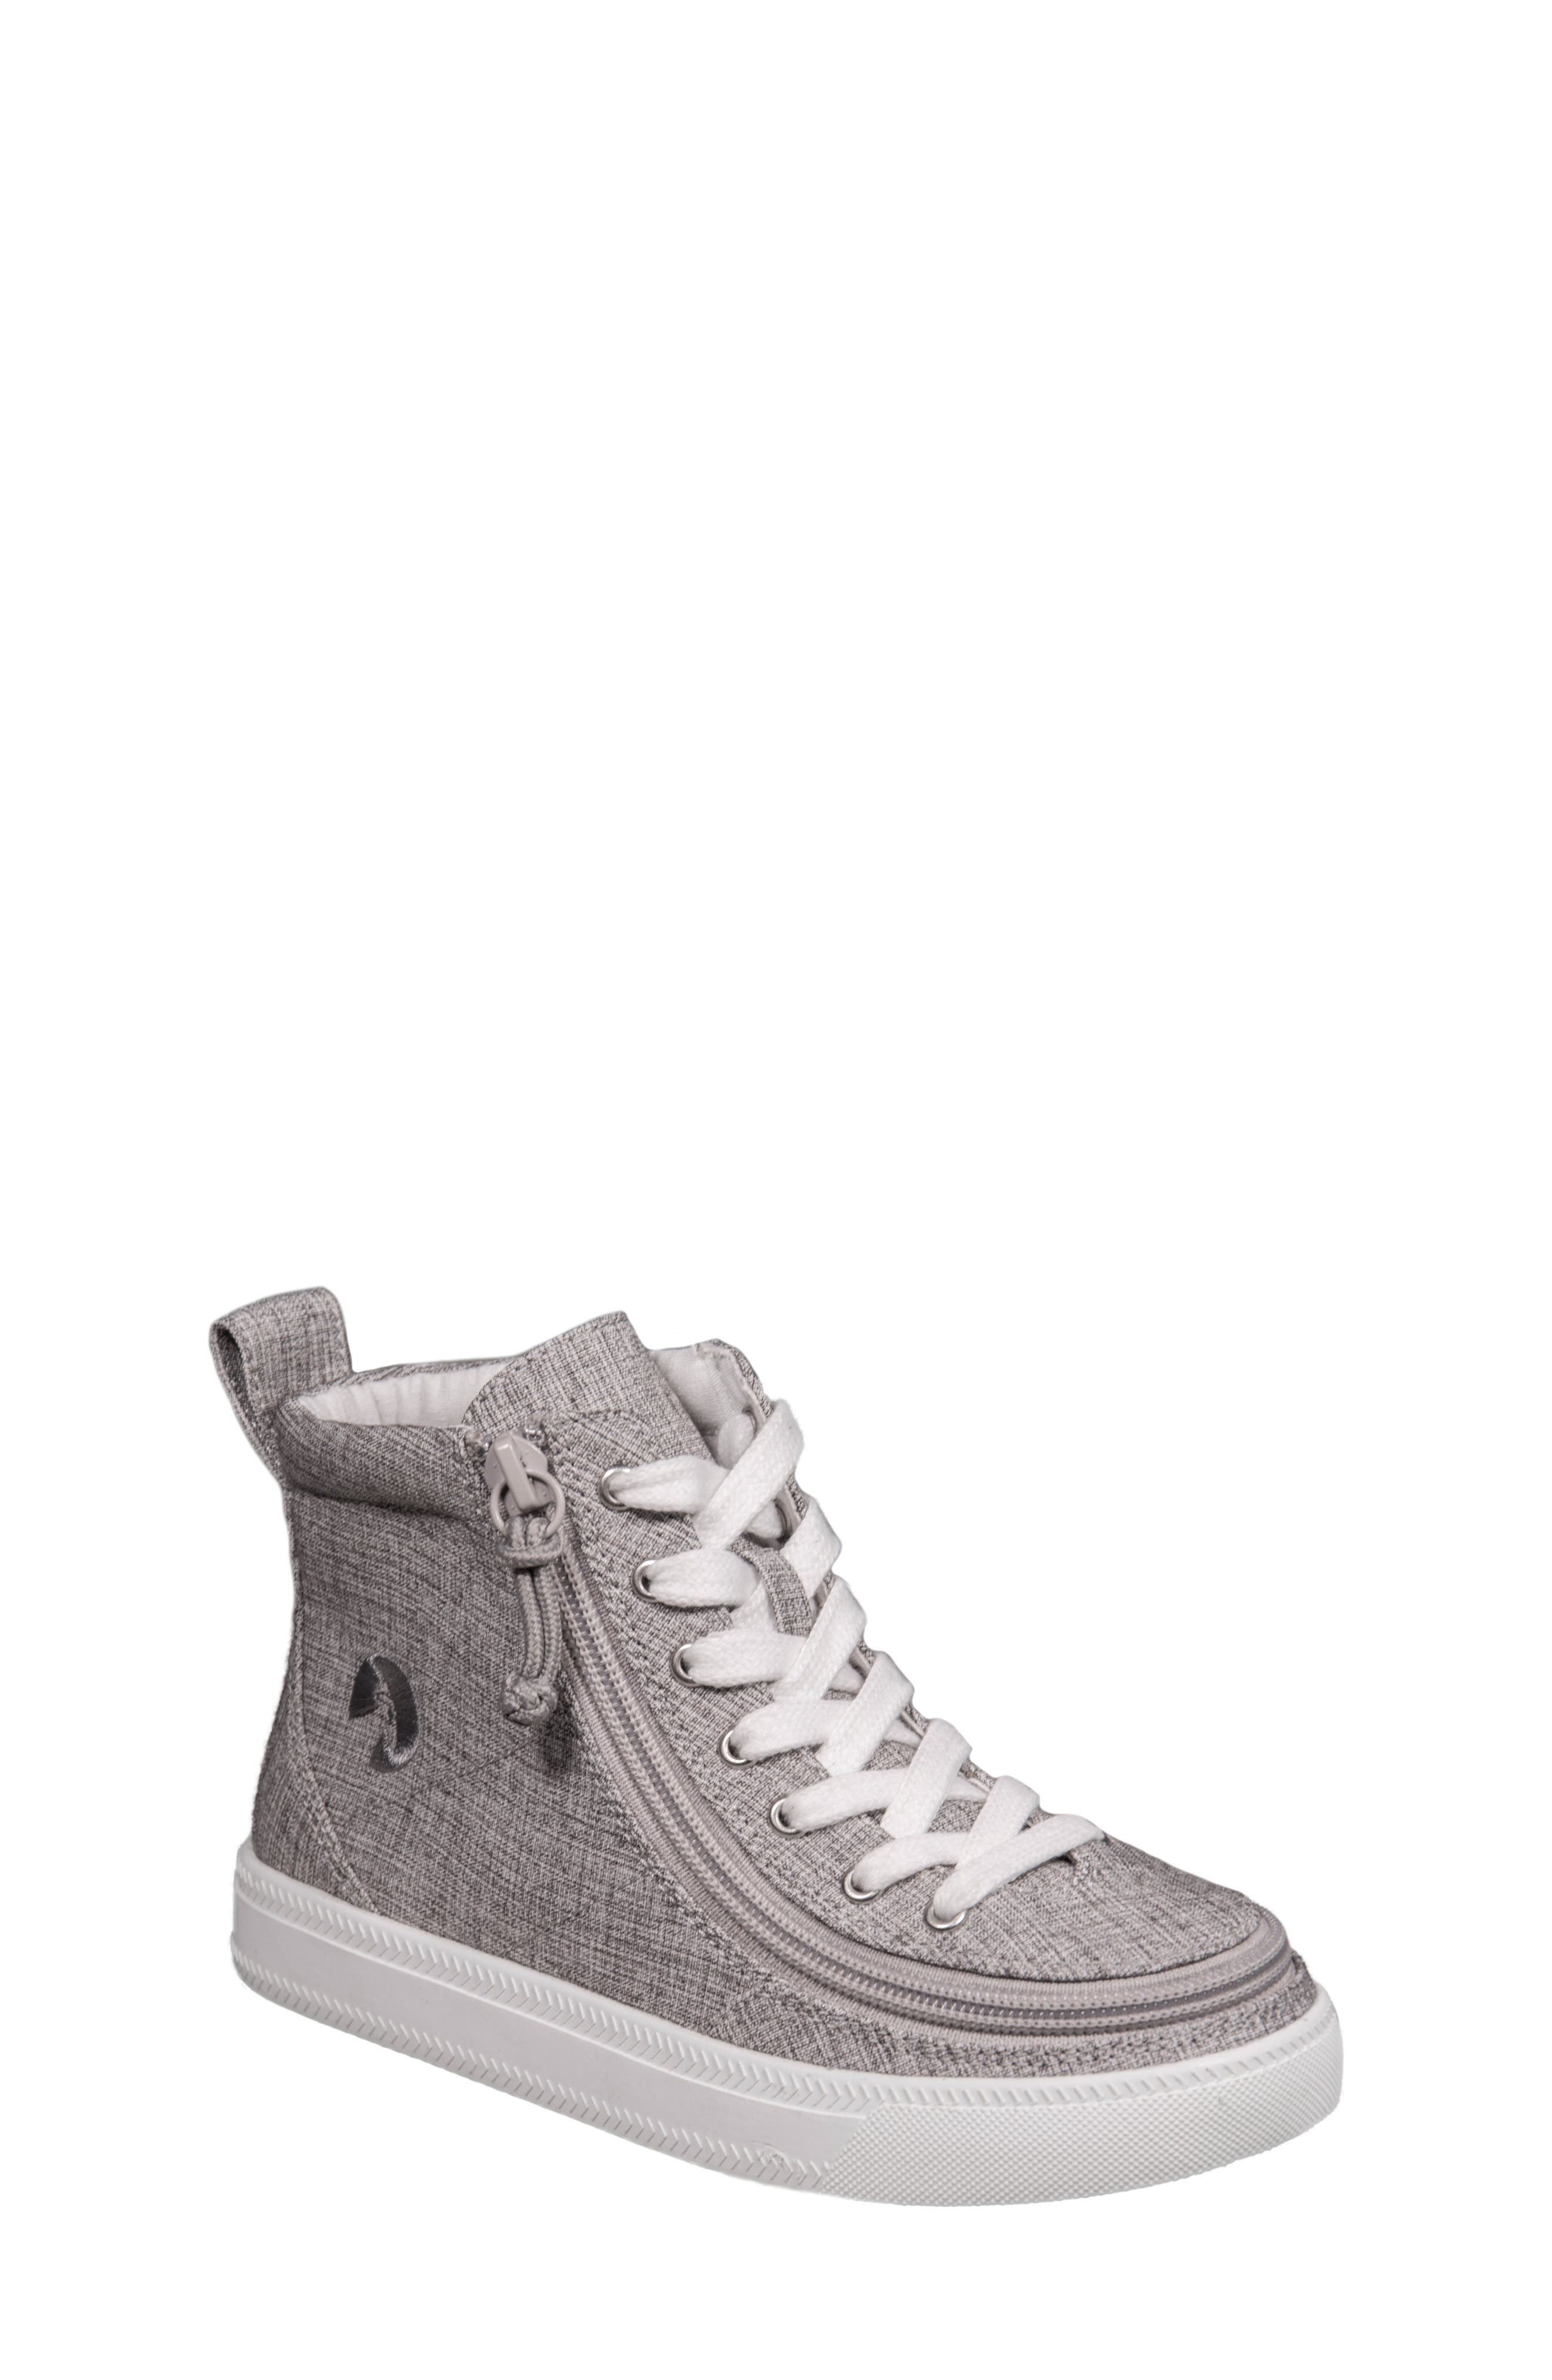 BILLY FOOTWEAR, Zip Around High Top Sneaker, Main thumbnail 1, color, GREY JERSEY